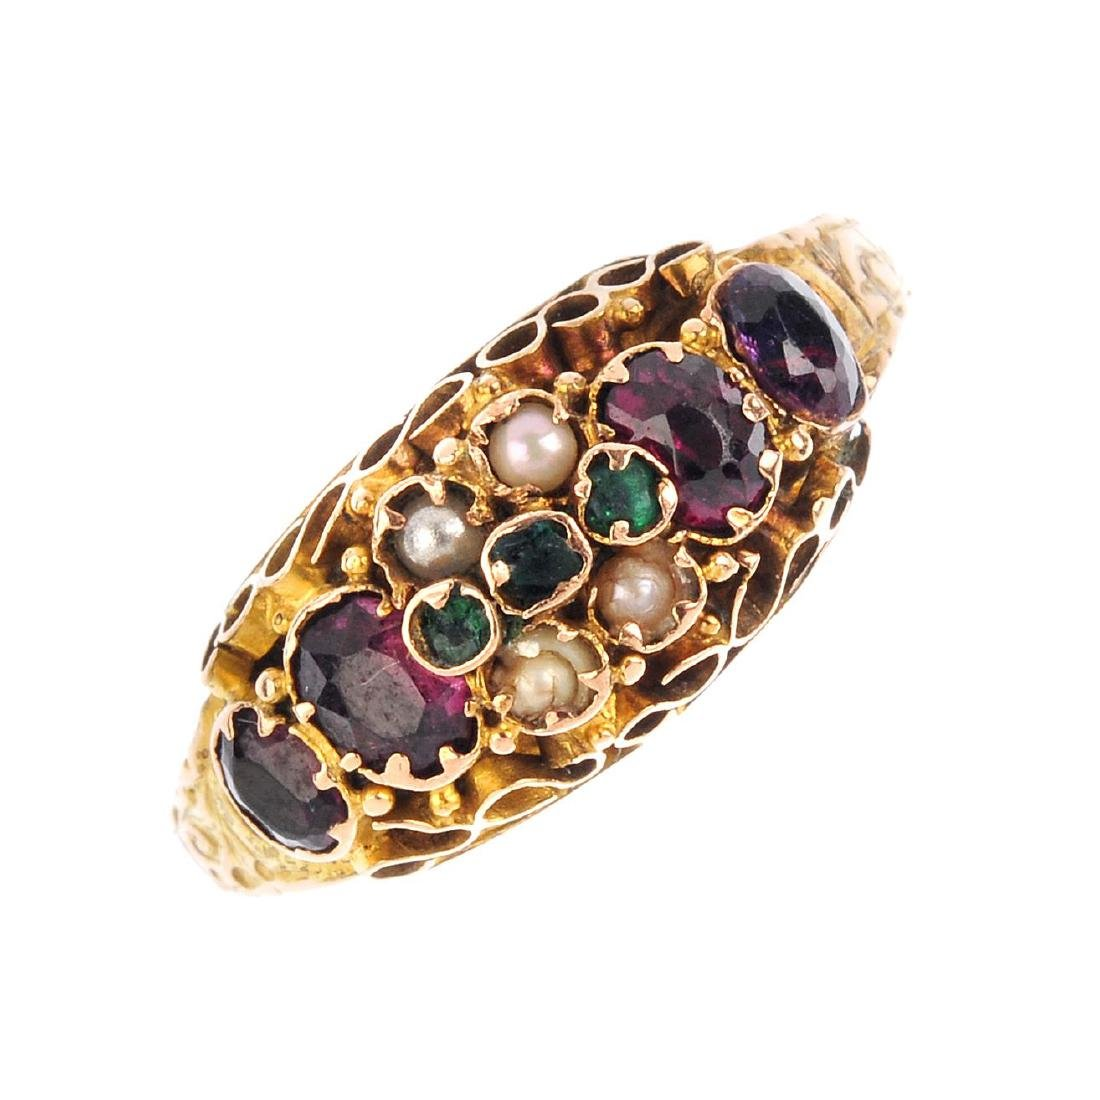 A late Victorian 15ct gold multi gem-set ring. The